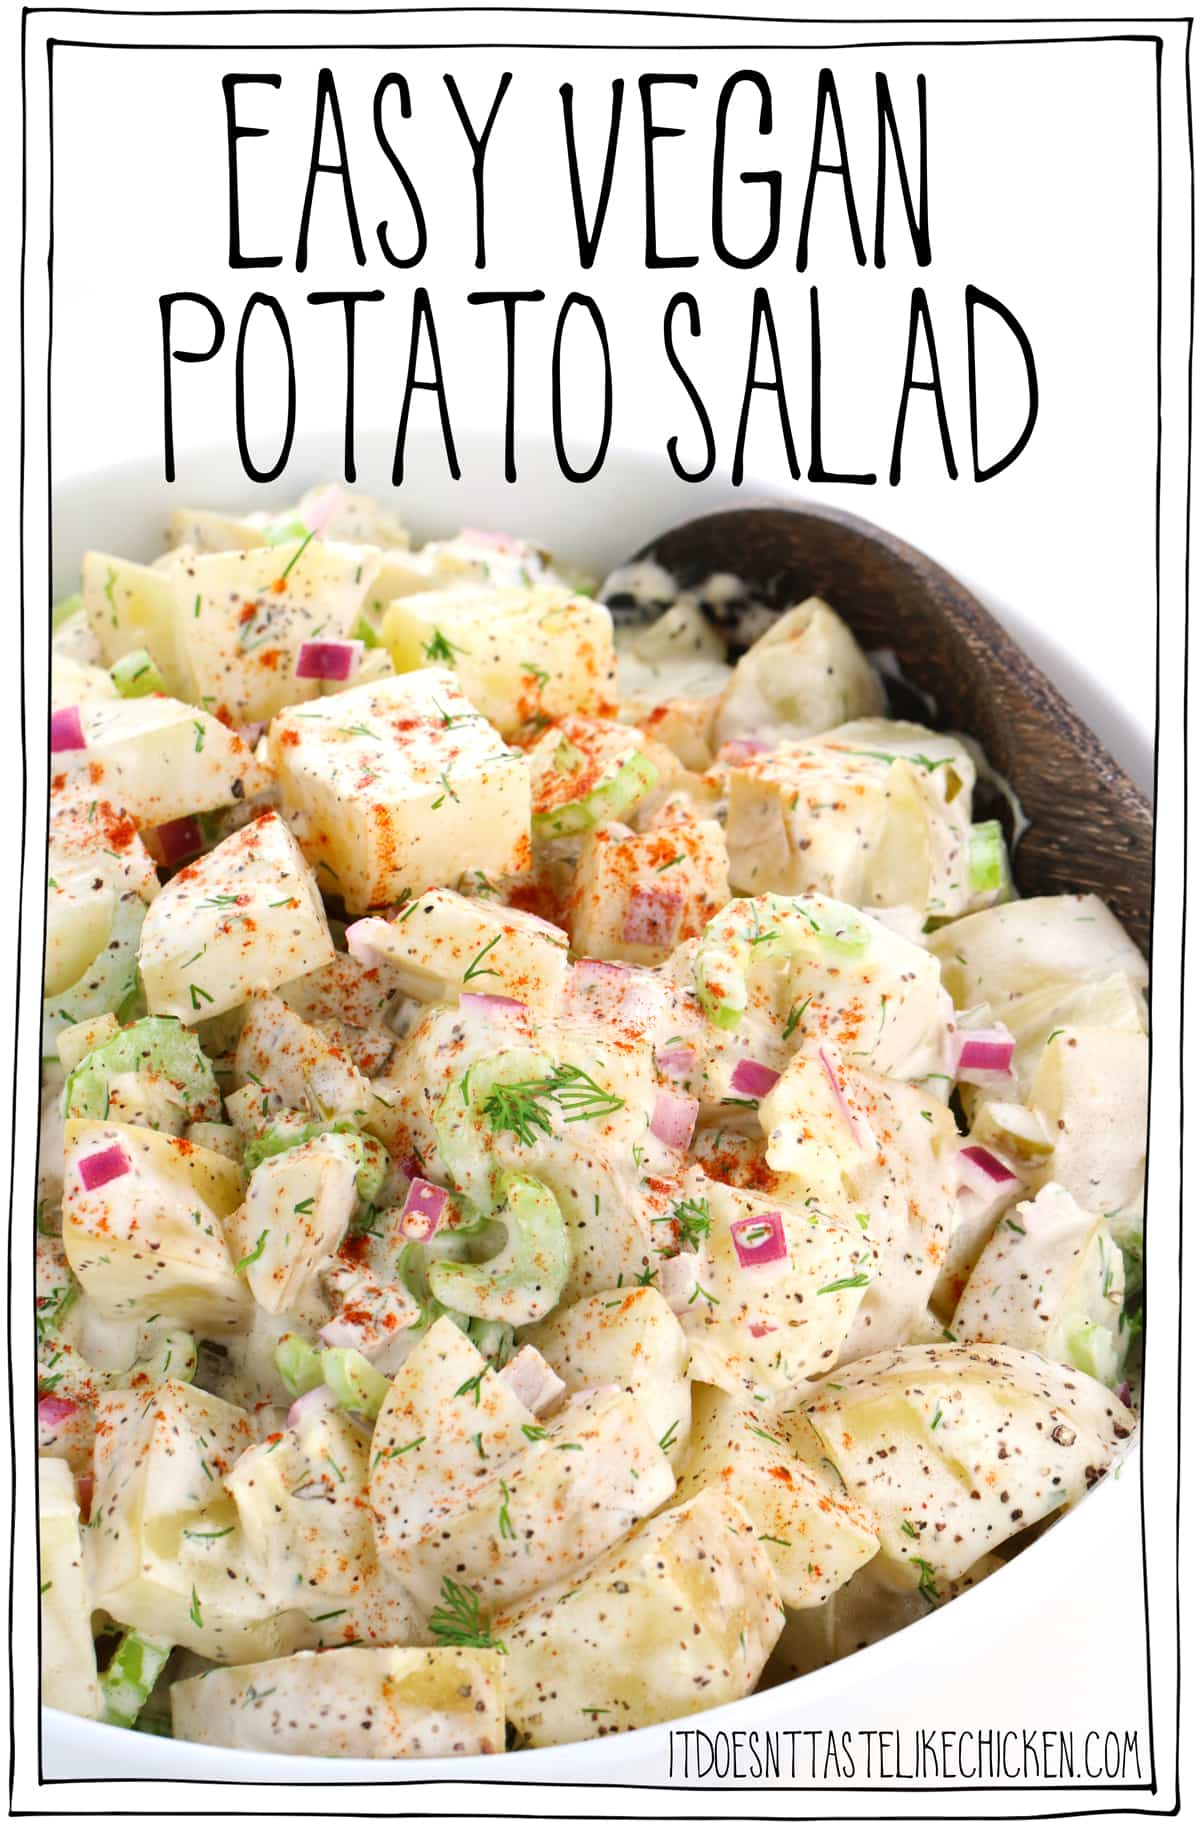 Easy Vegan Potato Salad! Tender potatoes are coated in a creamy dreamy dressing with the perfect blend of herbs and seasonings. Easy to make and can be made ahead of time so it's perfect for meal prep, BBQ's, and potlucks. #itdoesnttastelikechicken #veganrecipe